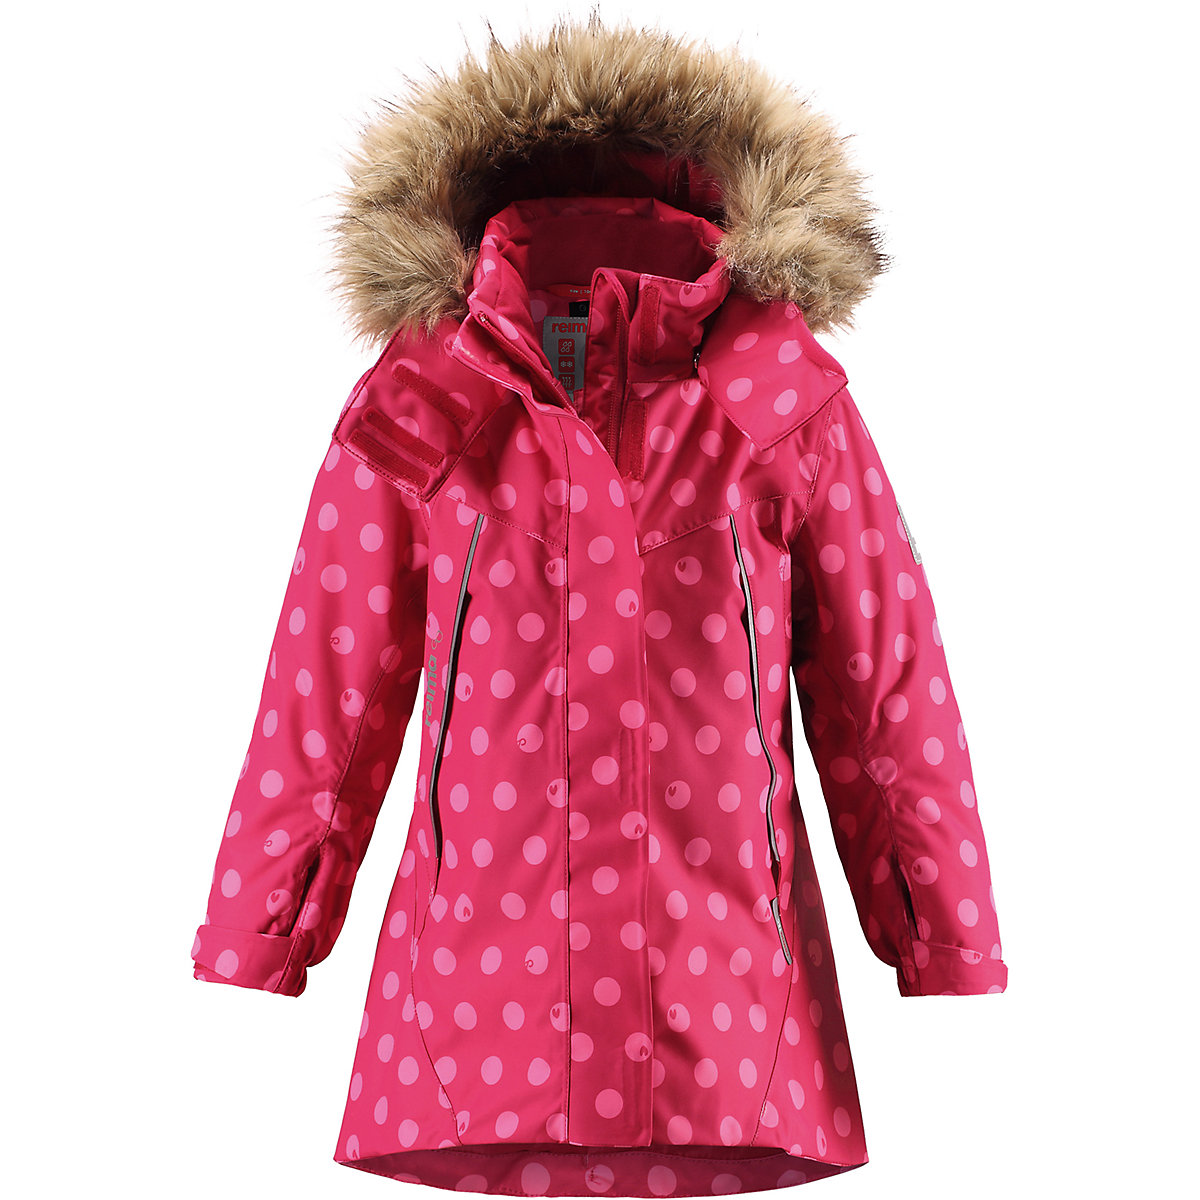 REIMA Jackets & Coats 8689335 for girls baby clothing winter warm boy girl jacket Polyester newborn baby boy girl romper 100